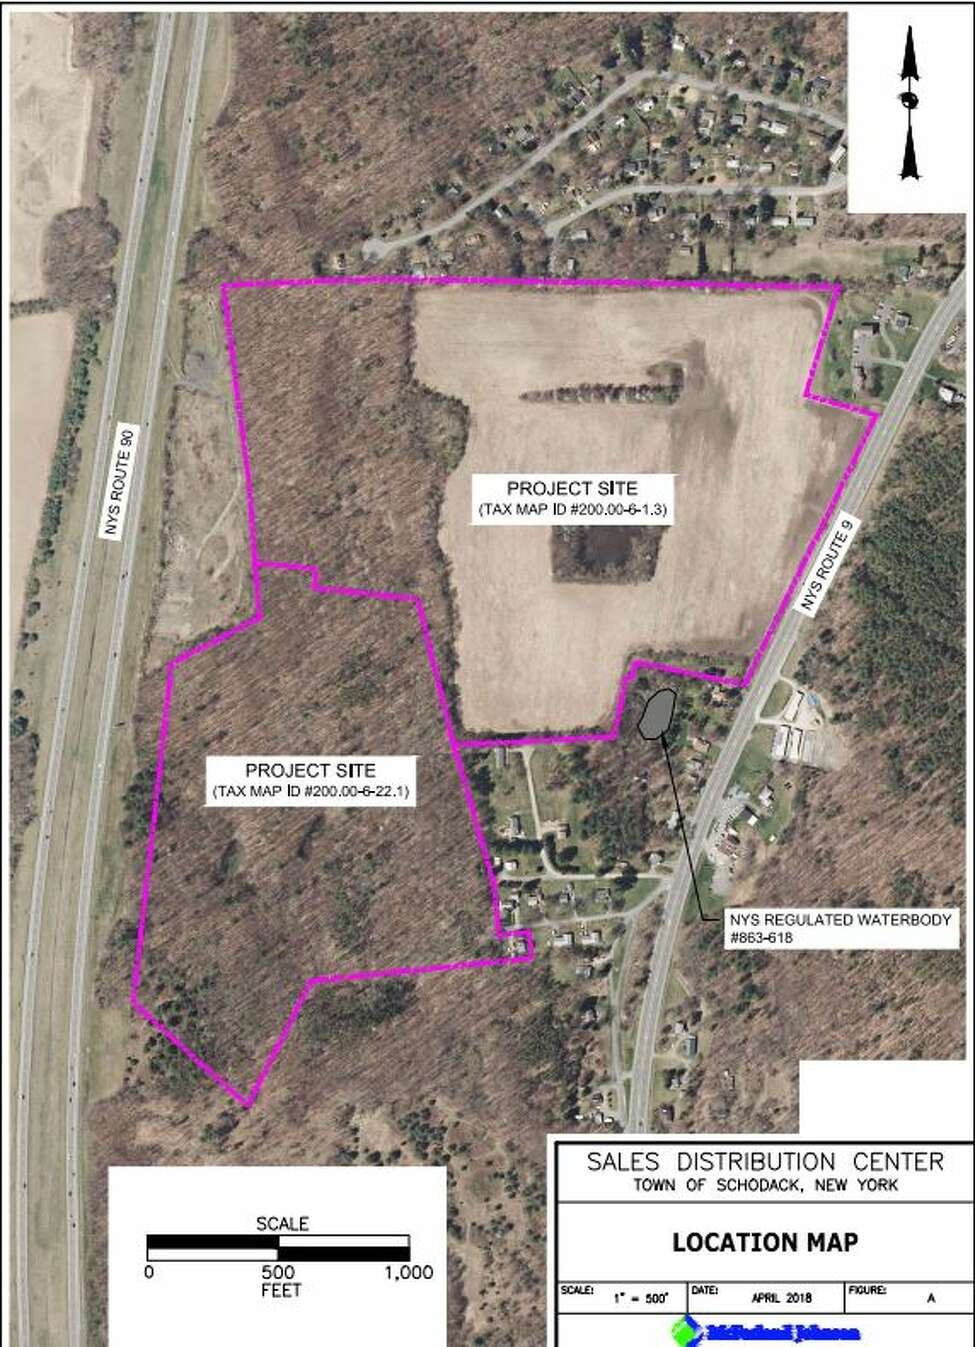 The proposed Amazon site is between Route 9 and I-90 in Scodack. The Birchwood Estates neighborhood is at the top of the proposed site.